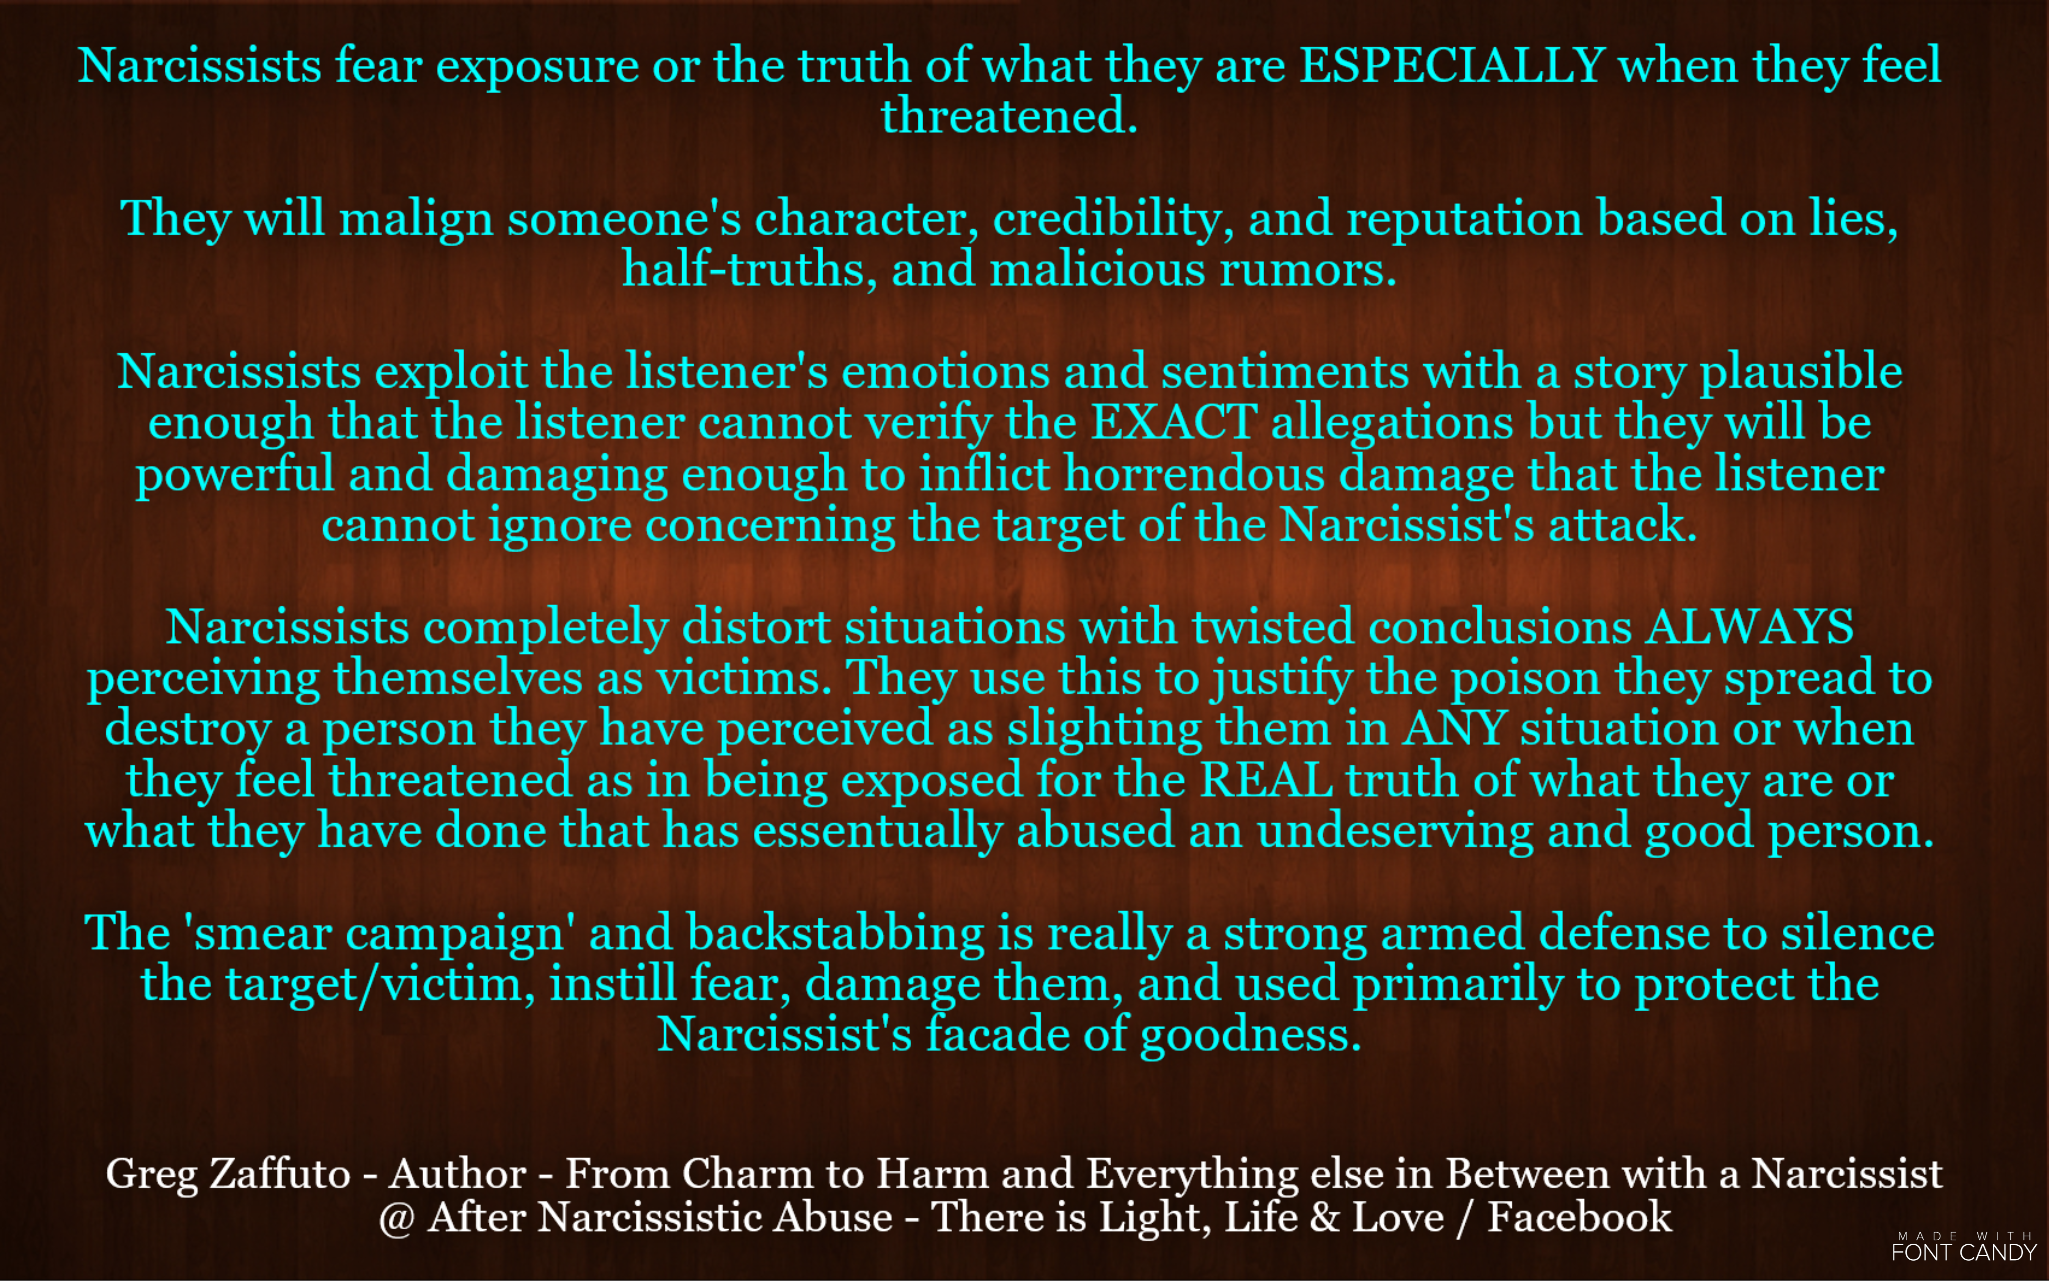 Why a narcissist does a smear campaign